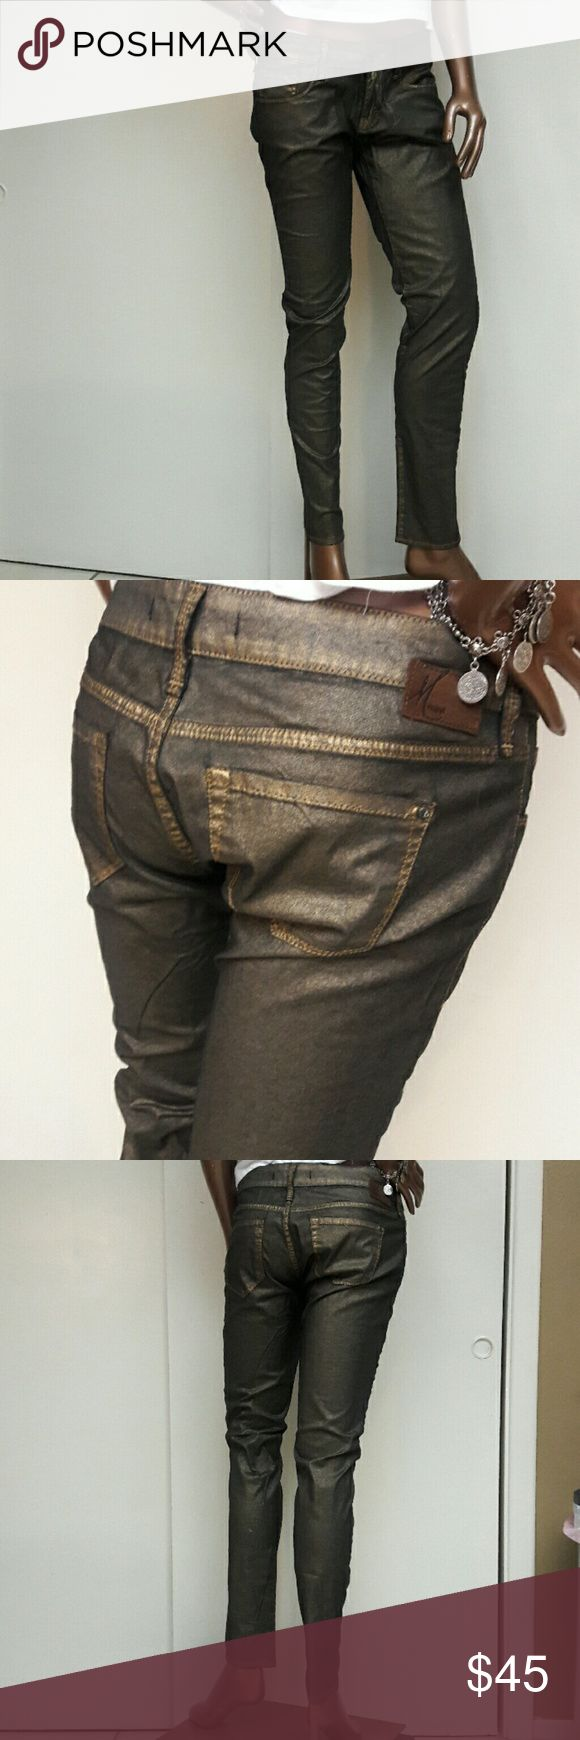 """NWOT Mavi Gold Wash Serena Super Skinny Jeans Brand Mavi Jean Company Nordstrom  NWOT  Size 29"""" Length 32"""" Style Serena Got Super Skinny Low Rise Classic 5 pocket style with Designer leather tag on back. Zipper Fly Originally $98 Nordstrom SALE Price $69.99 verify online.  Great club or Date Nite Jeans Bundle 2 or more in my Closet for 20% discount. Mavi Jeans Skinny"""